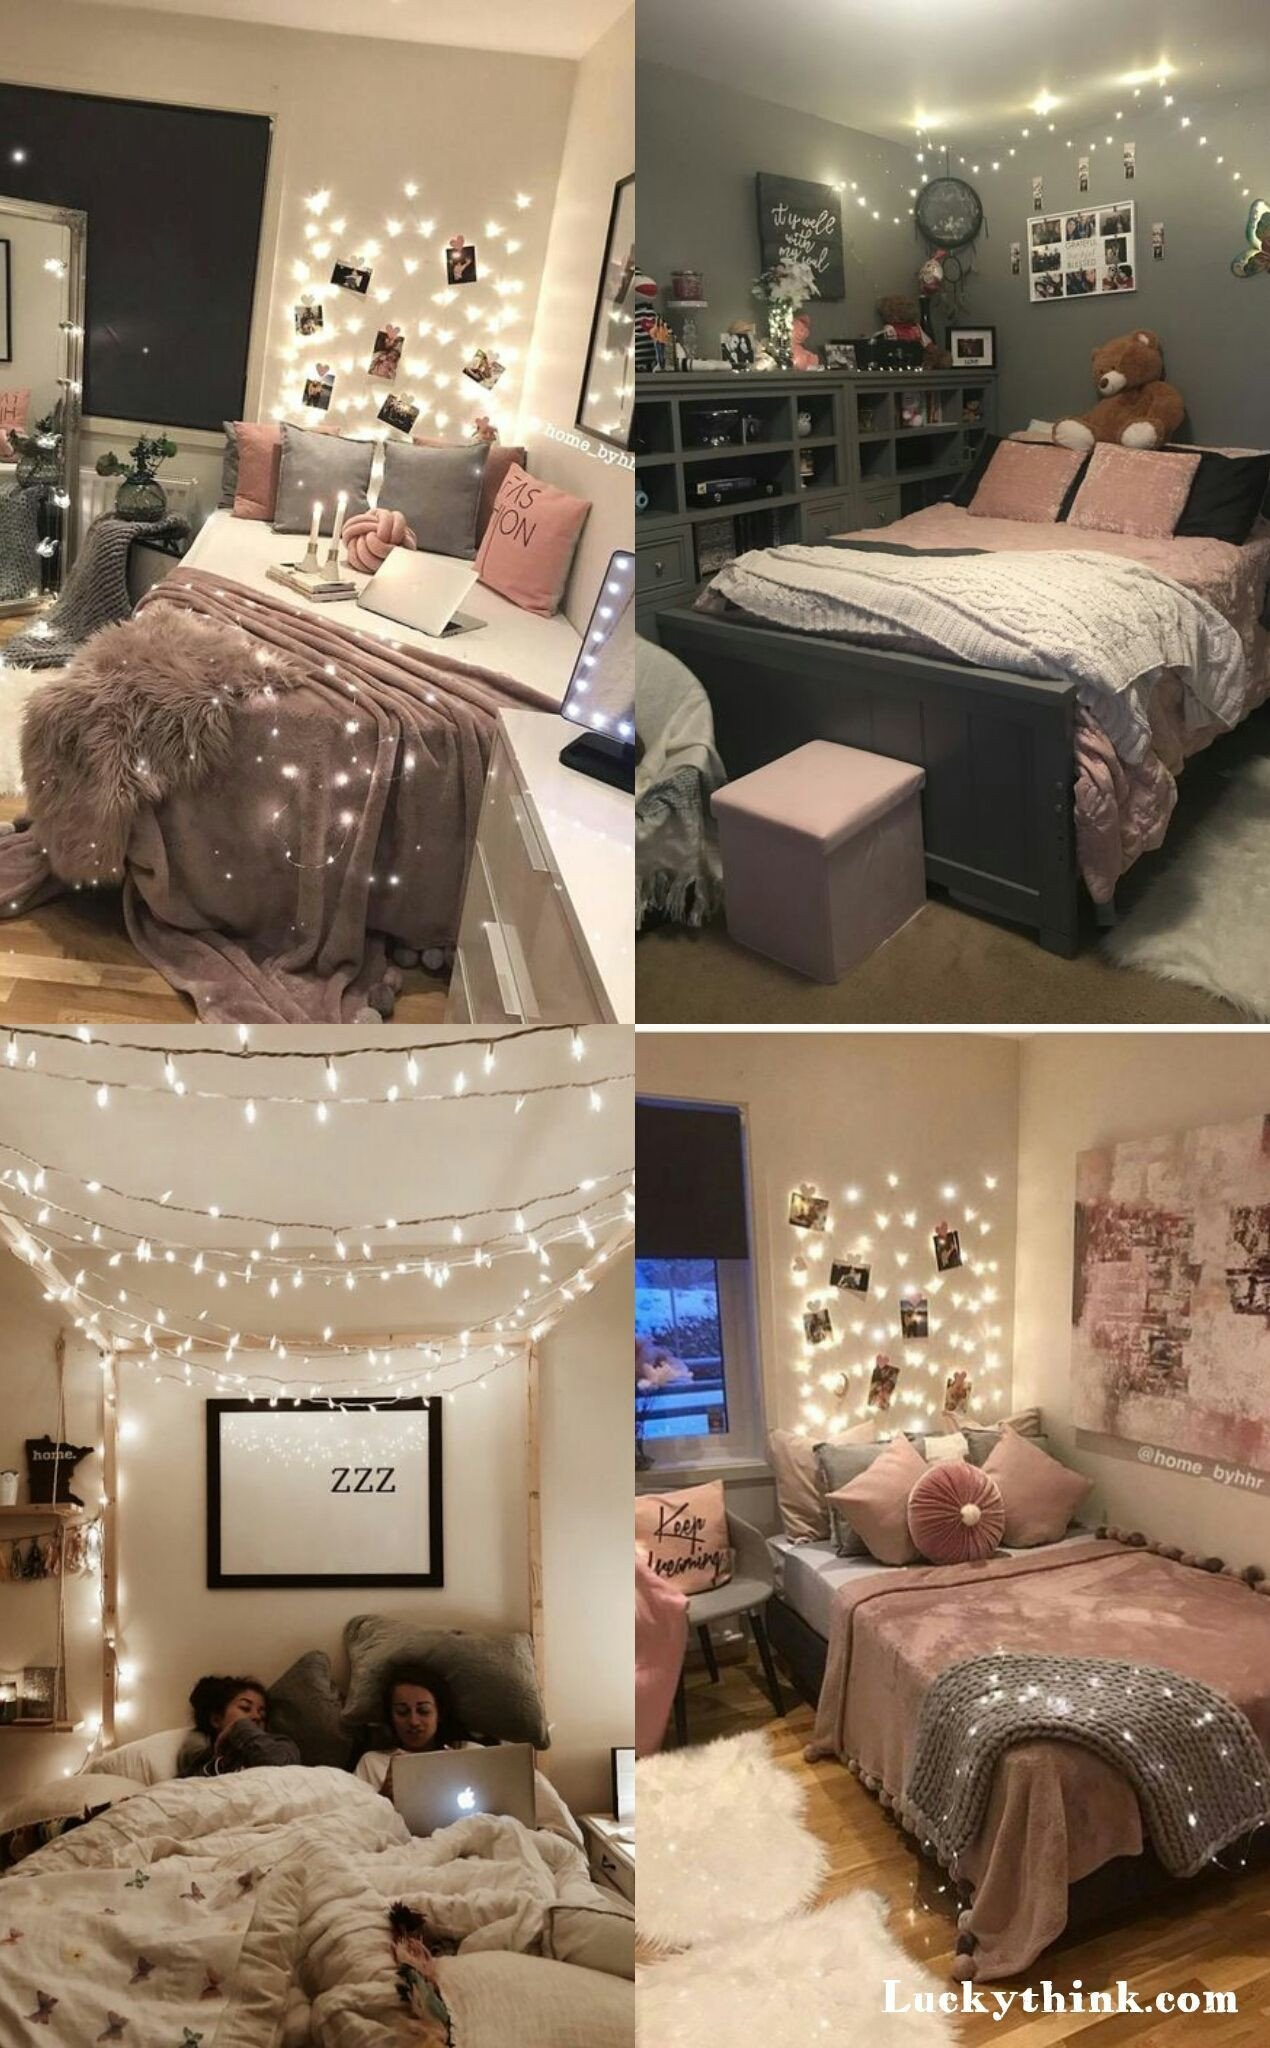 Cute Light for Bedroom Unique Pin On Decor